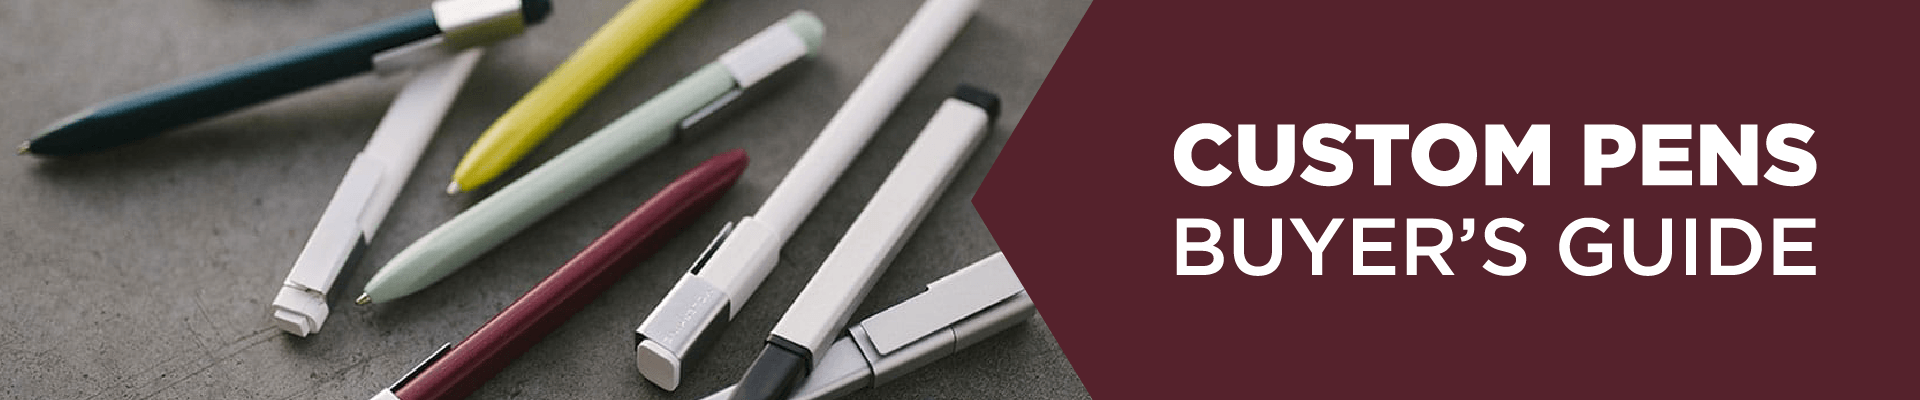 Custom Pens and Writing Utensils Buyers Guide